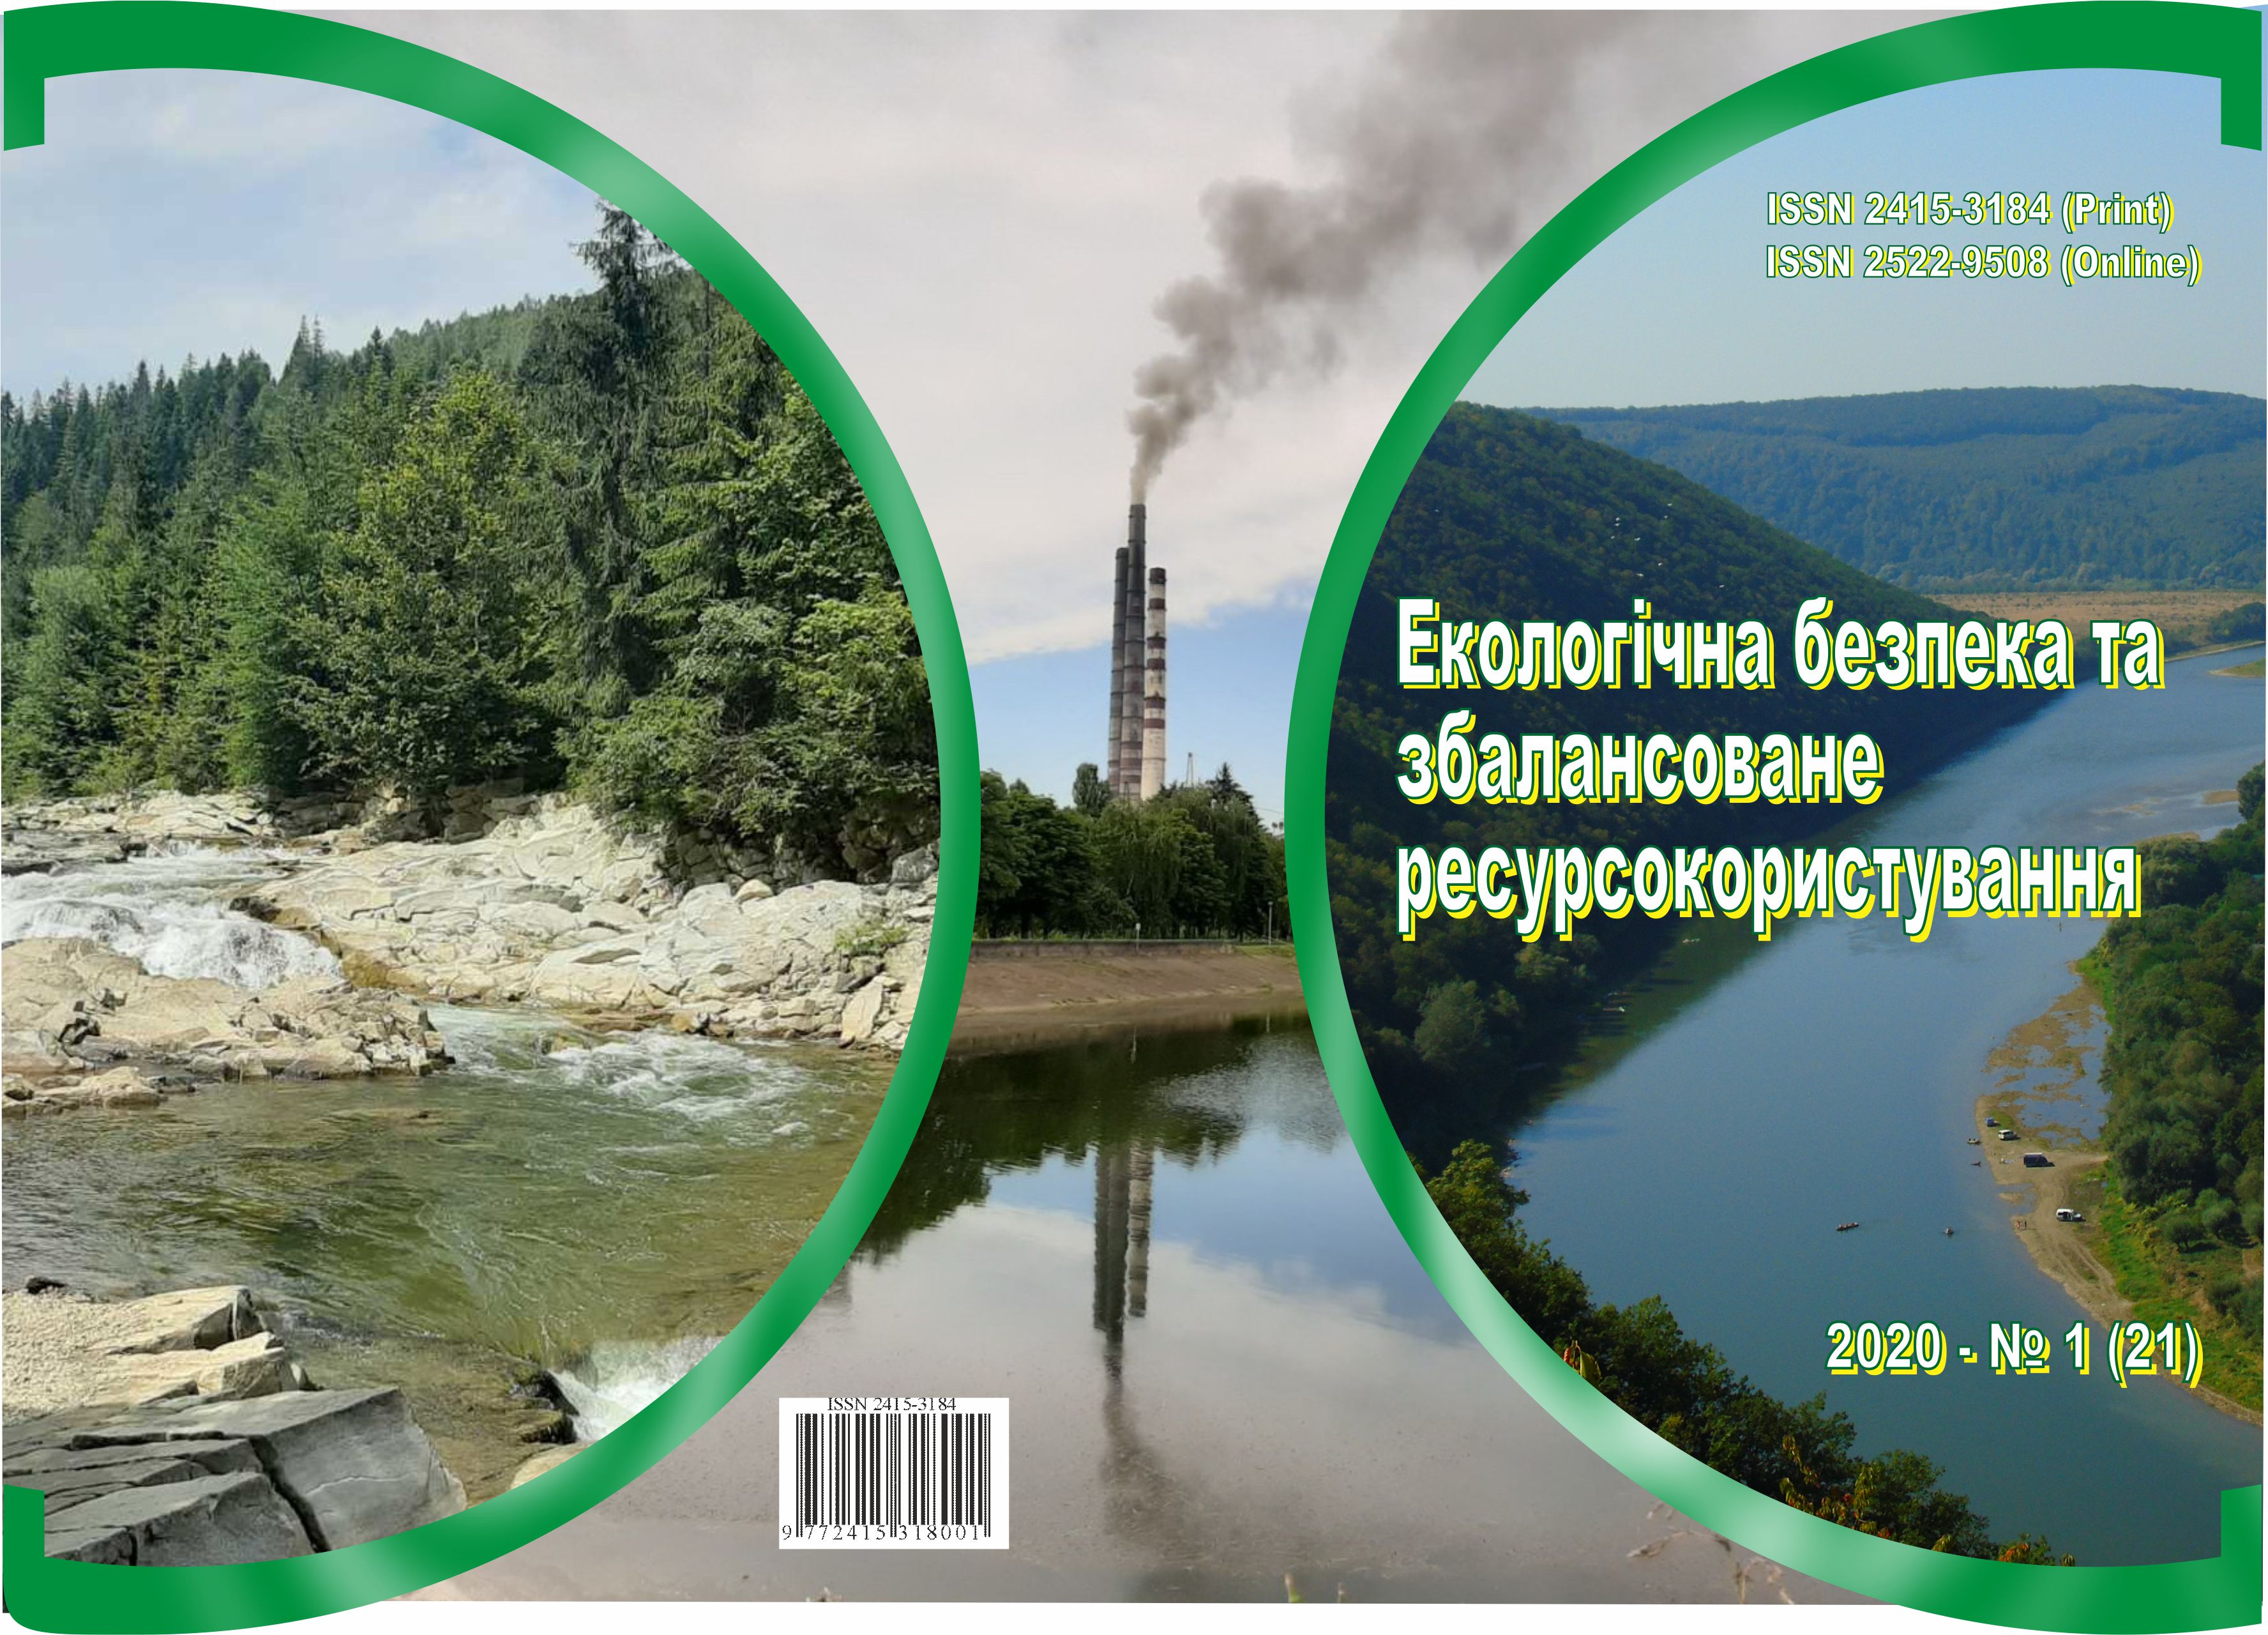 View No. 20(1) (2020): Ecological Safety and Balanced Use of Resources